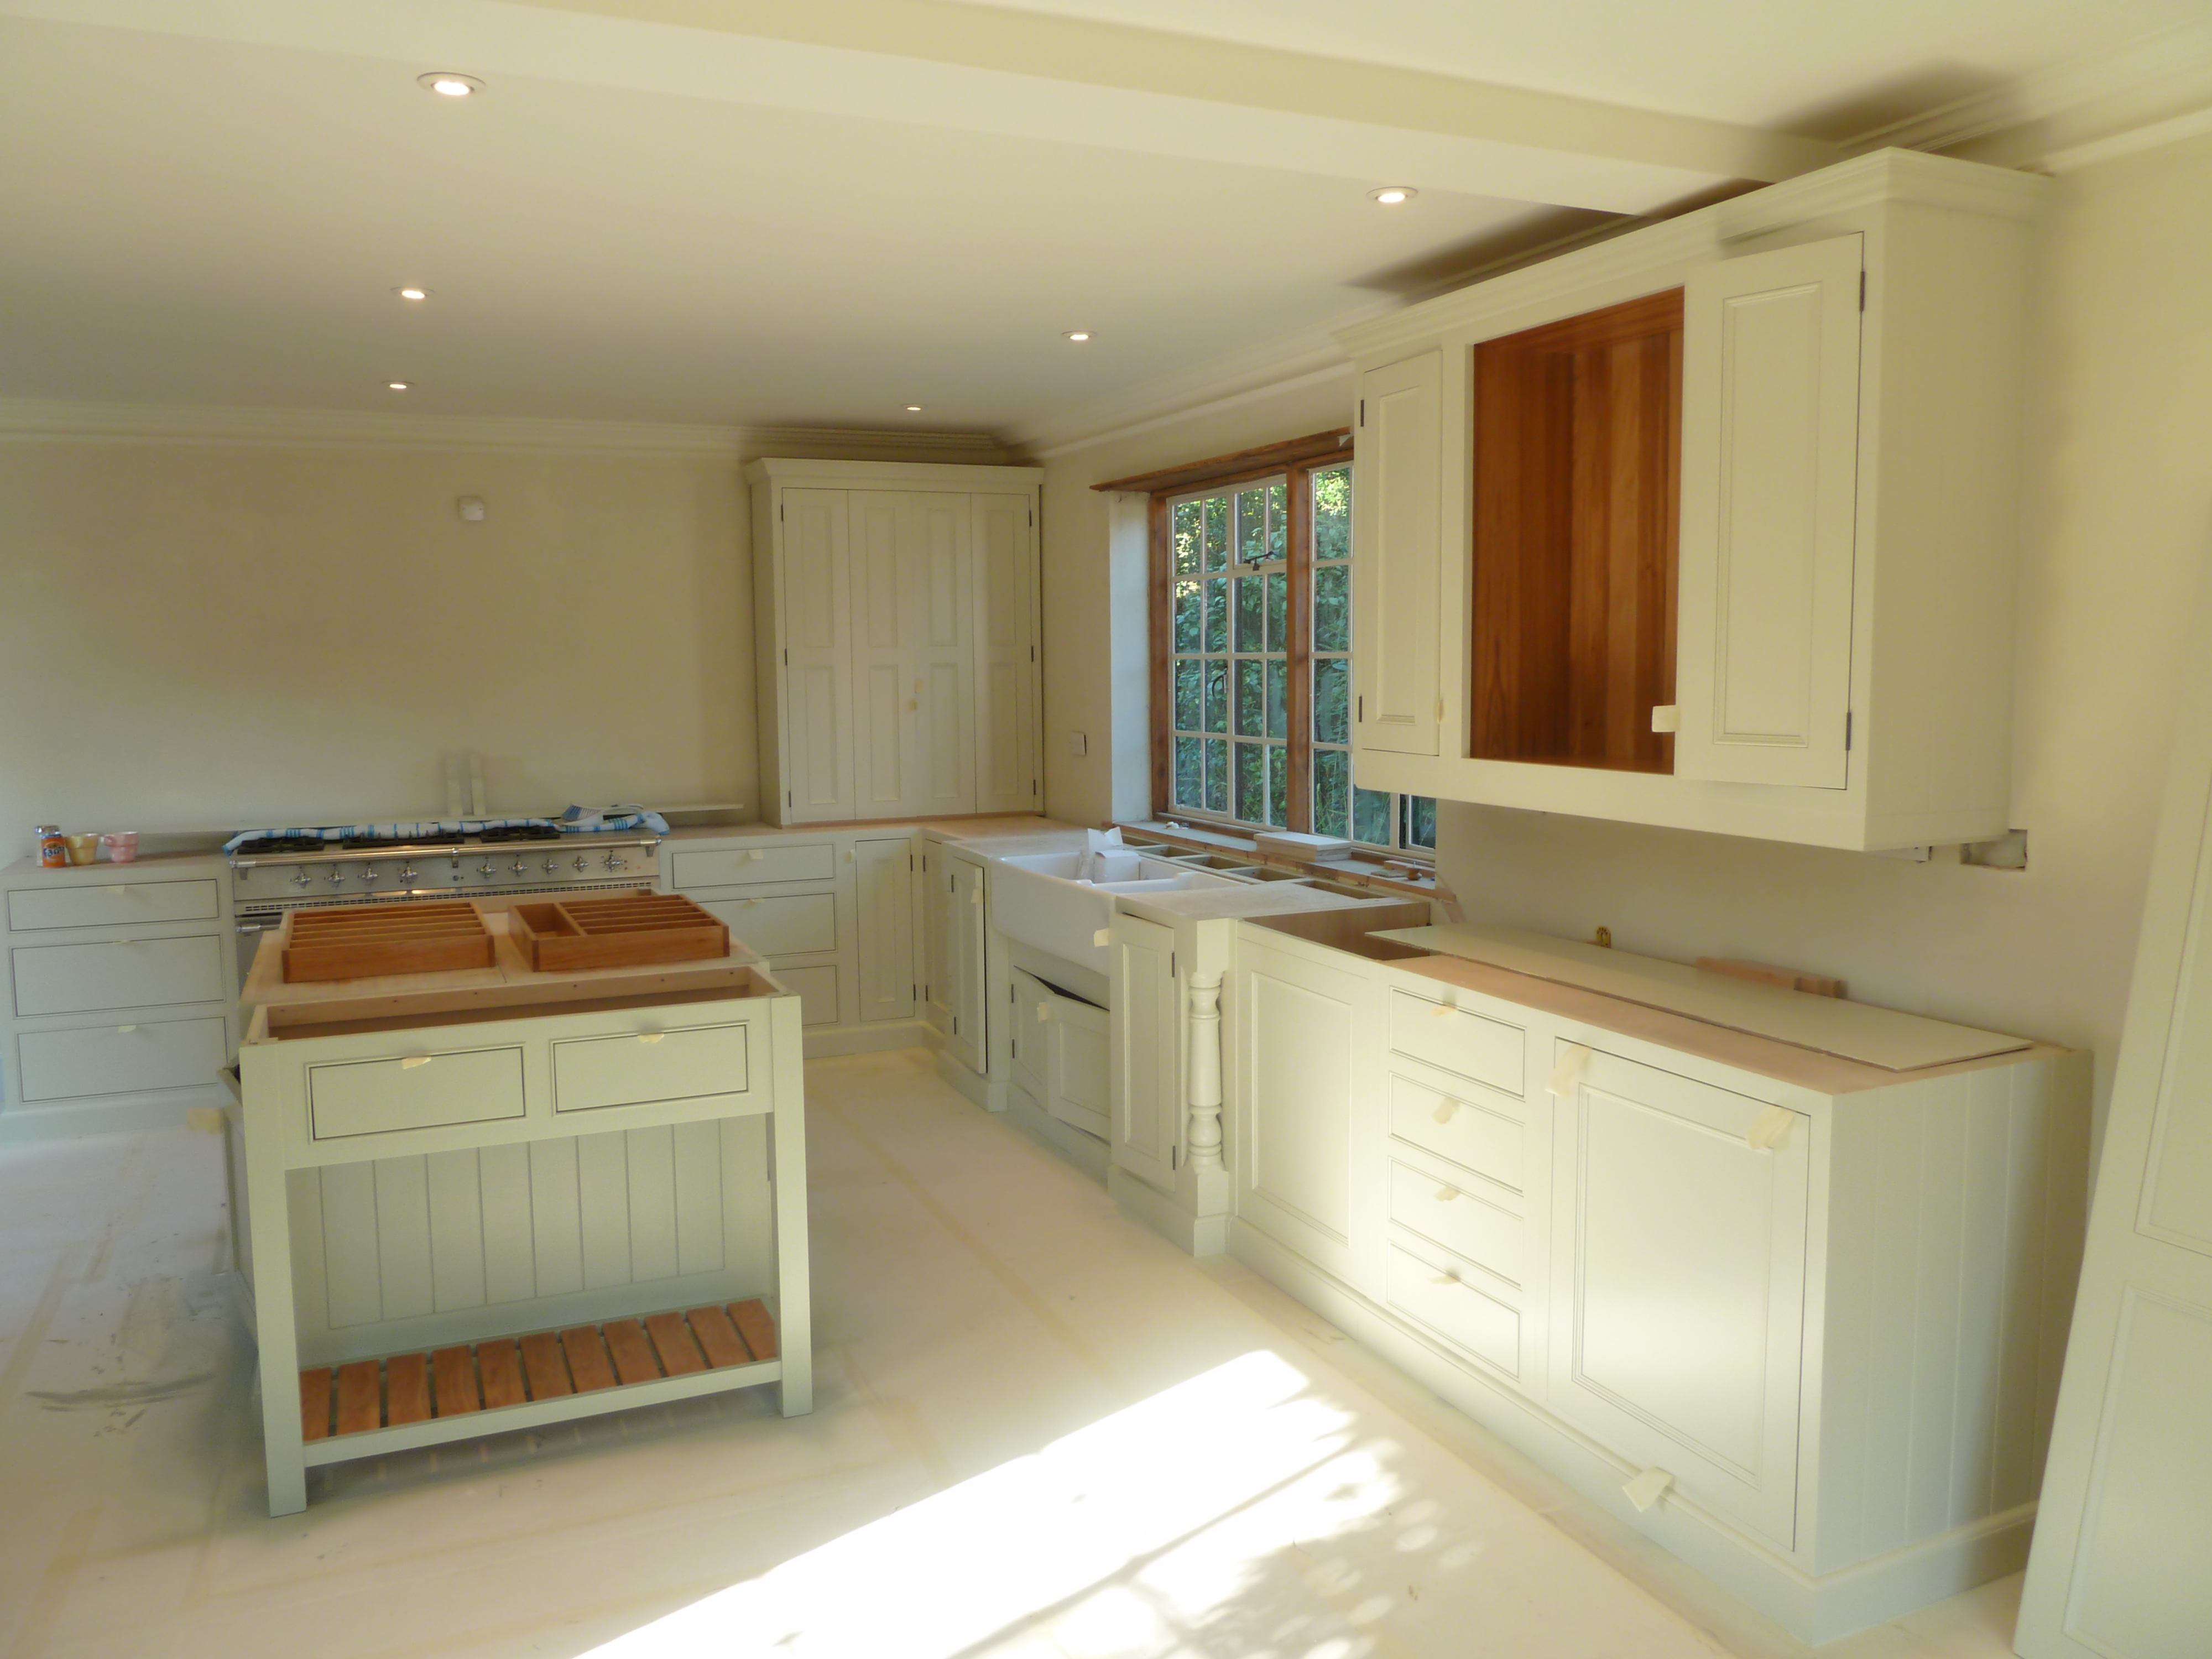 hand painted kitchen surrey 2 spray painting kitchen cabinets Hand painted kitchen Surrey